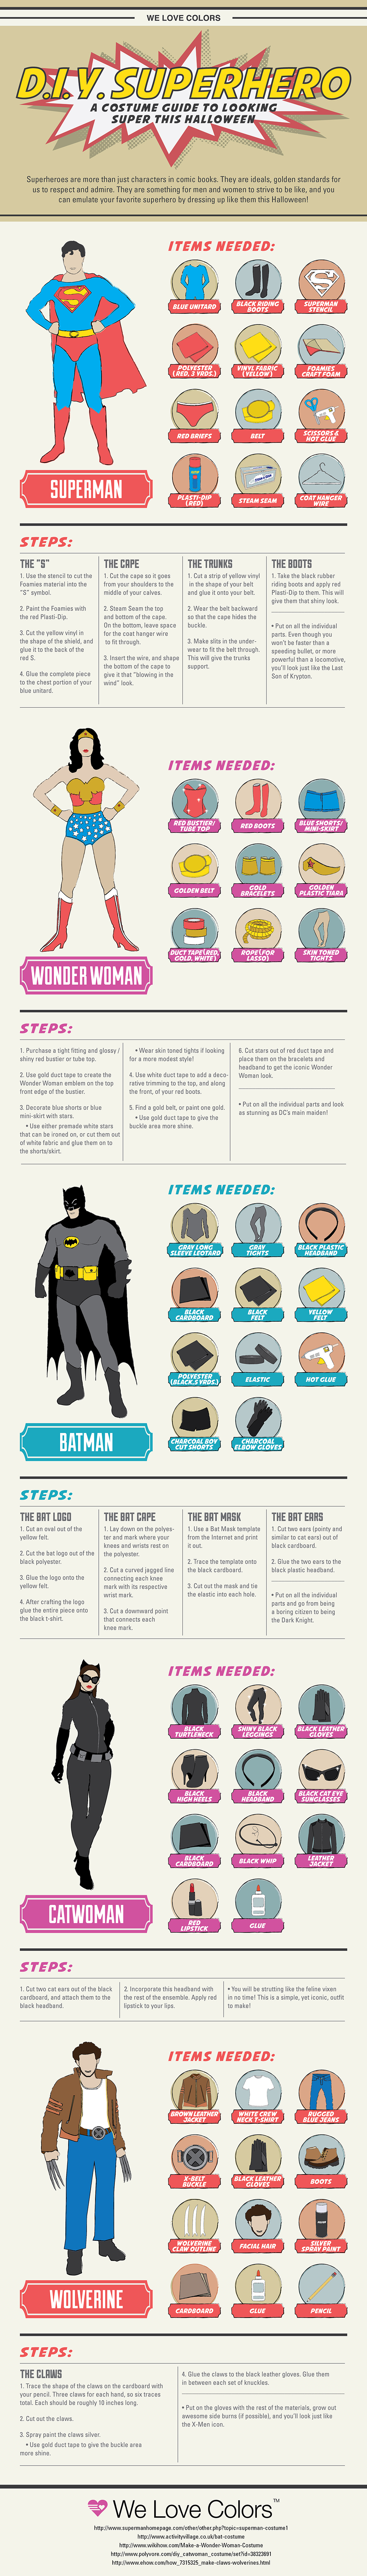 D.I.Y. Superhero Costumes Infographic - We Love Colors